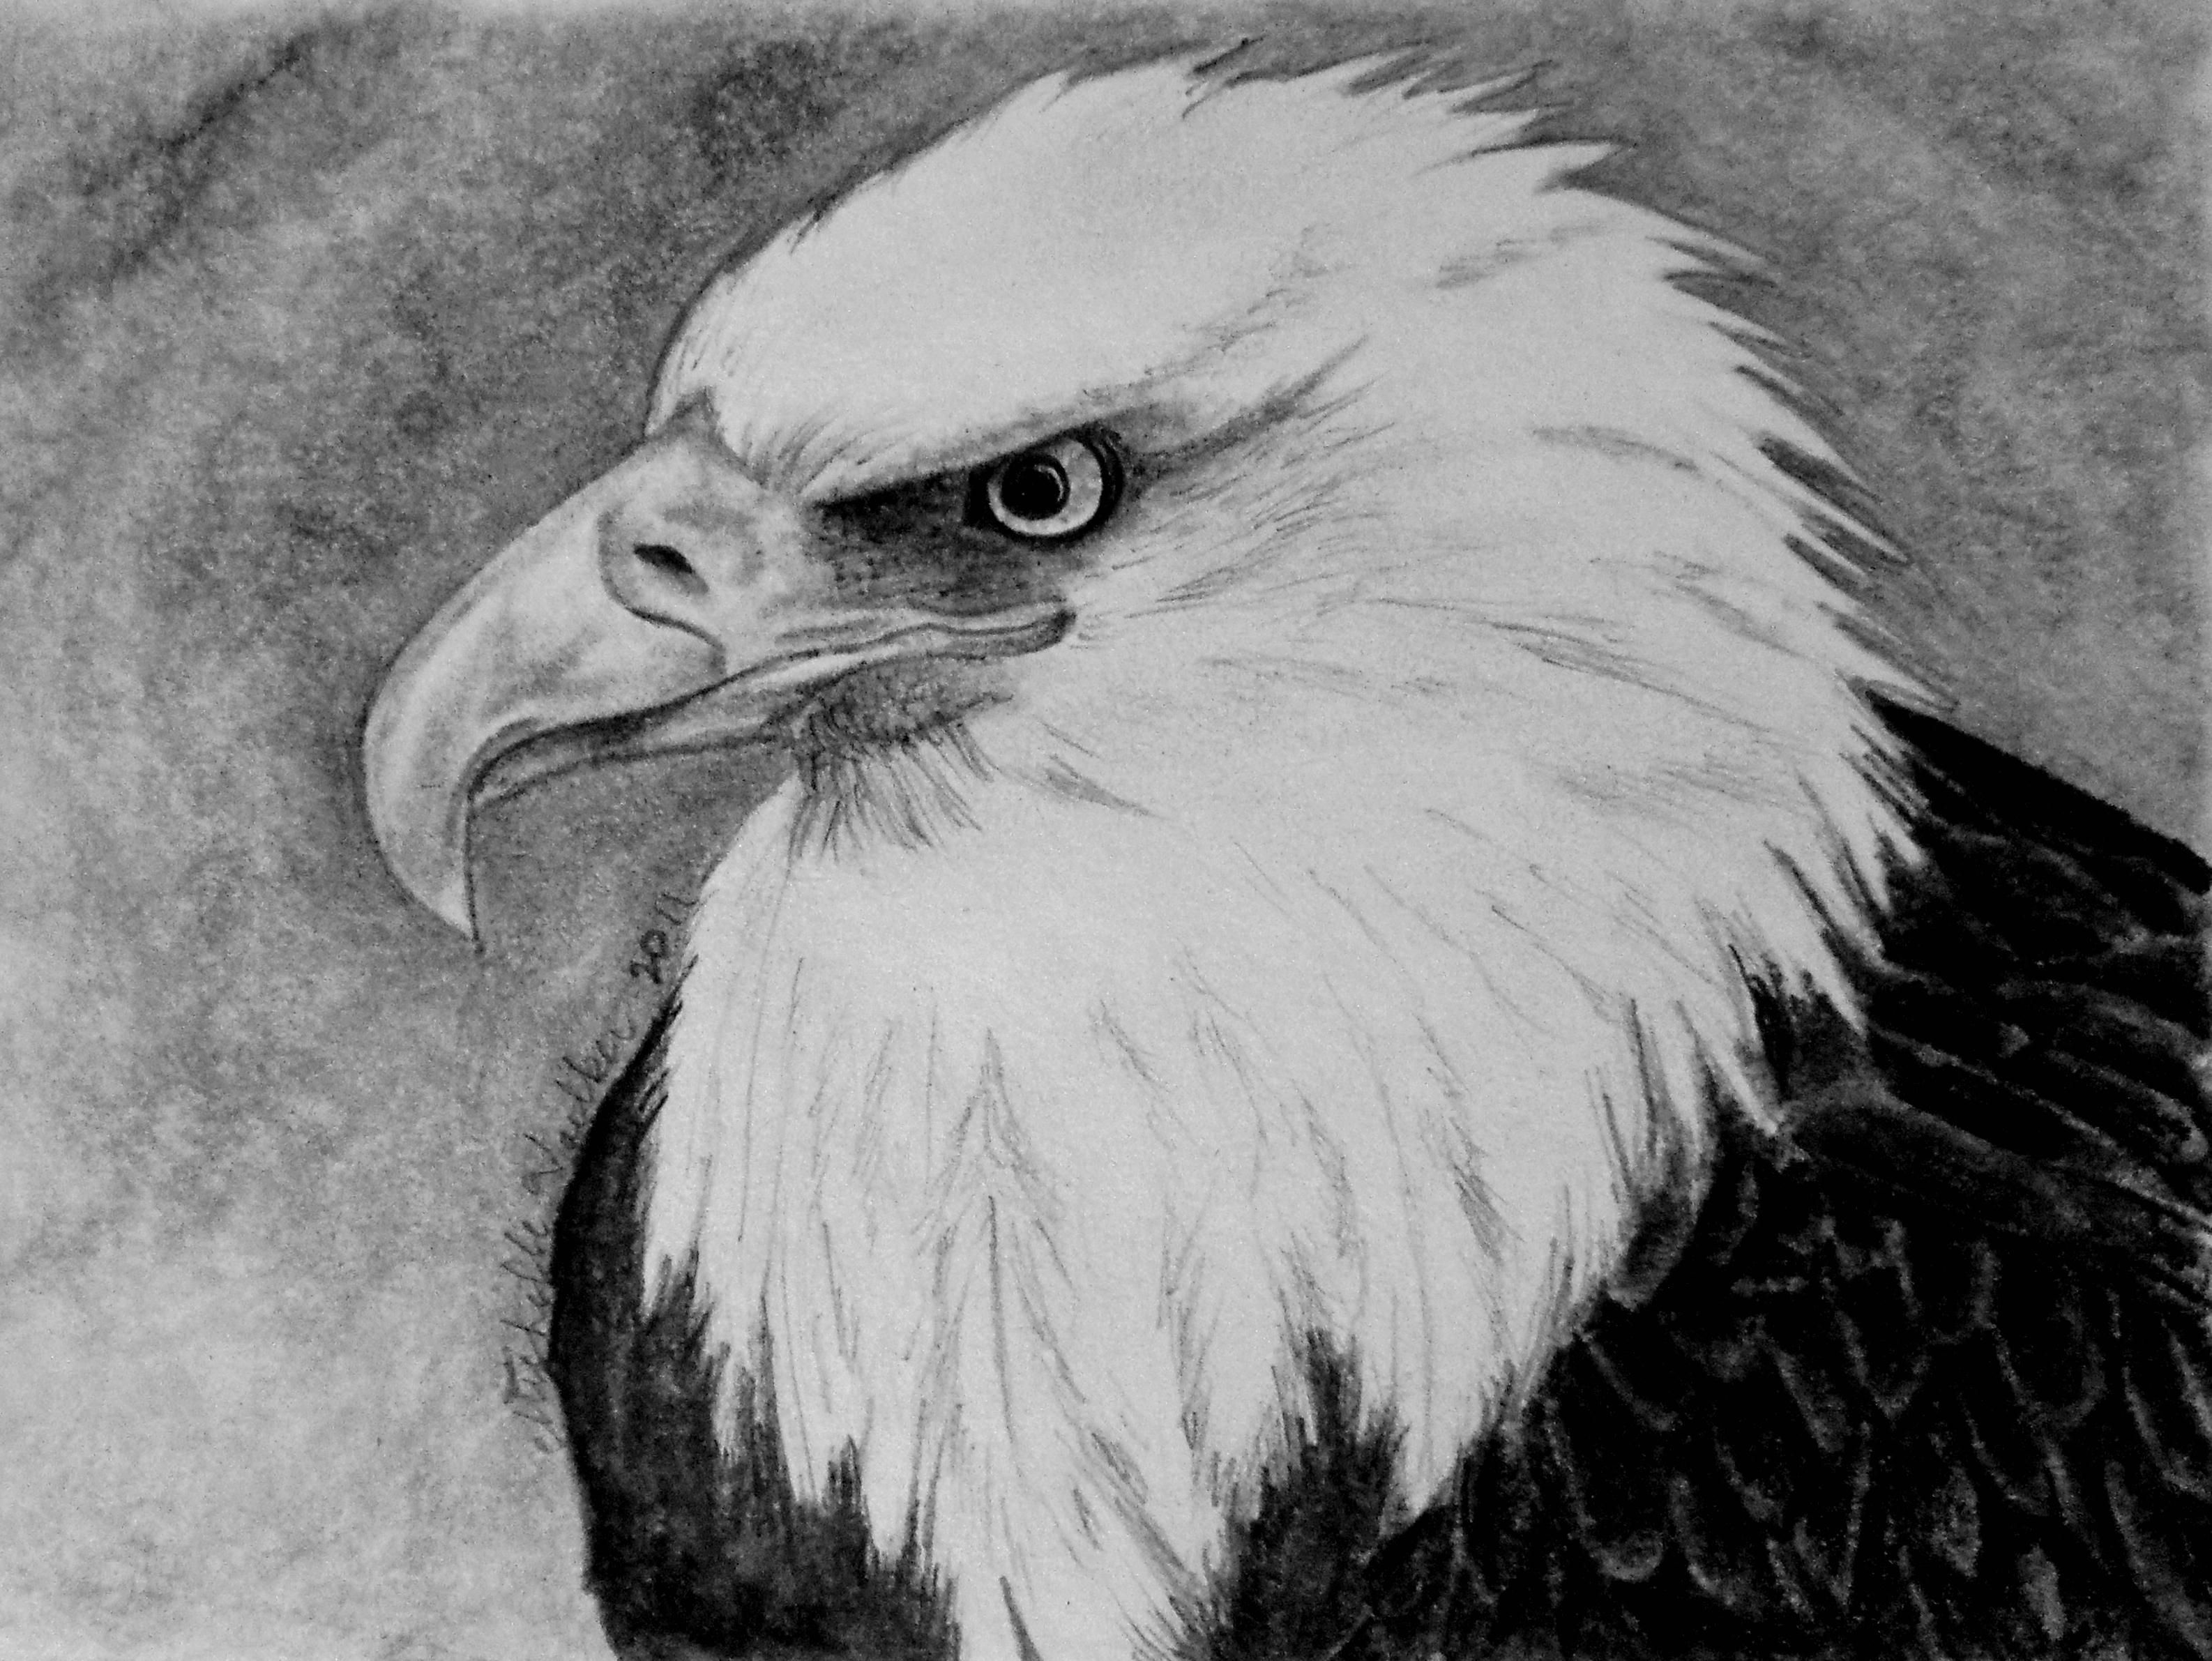 Eagle pencil drawing michelles drawings pencil drawings